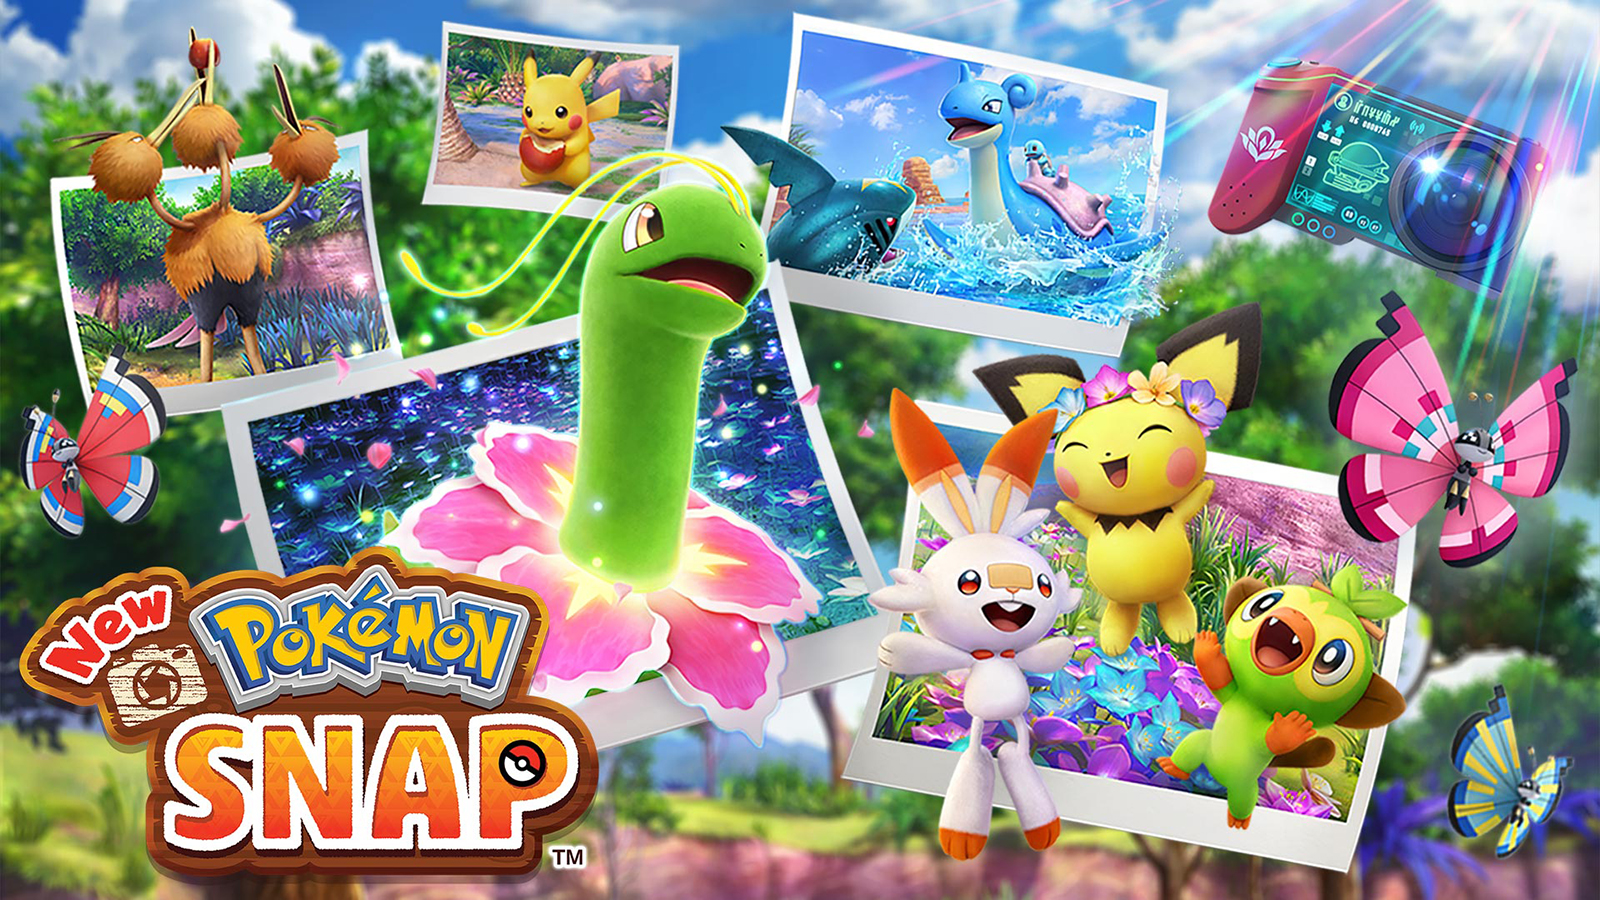 New Pokemon Snap on Nintendo Switch